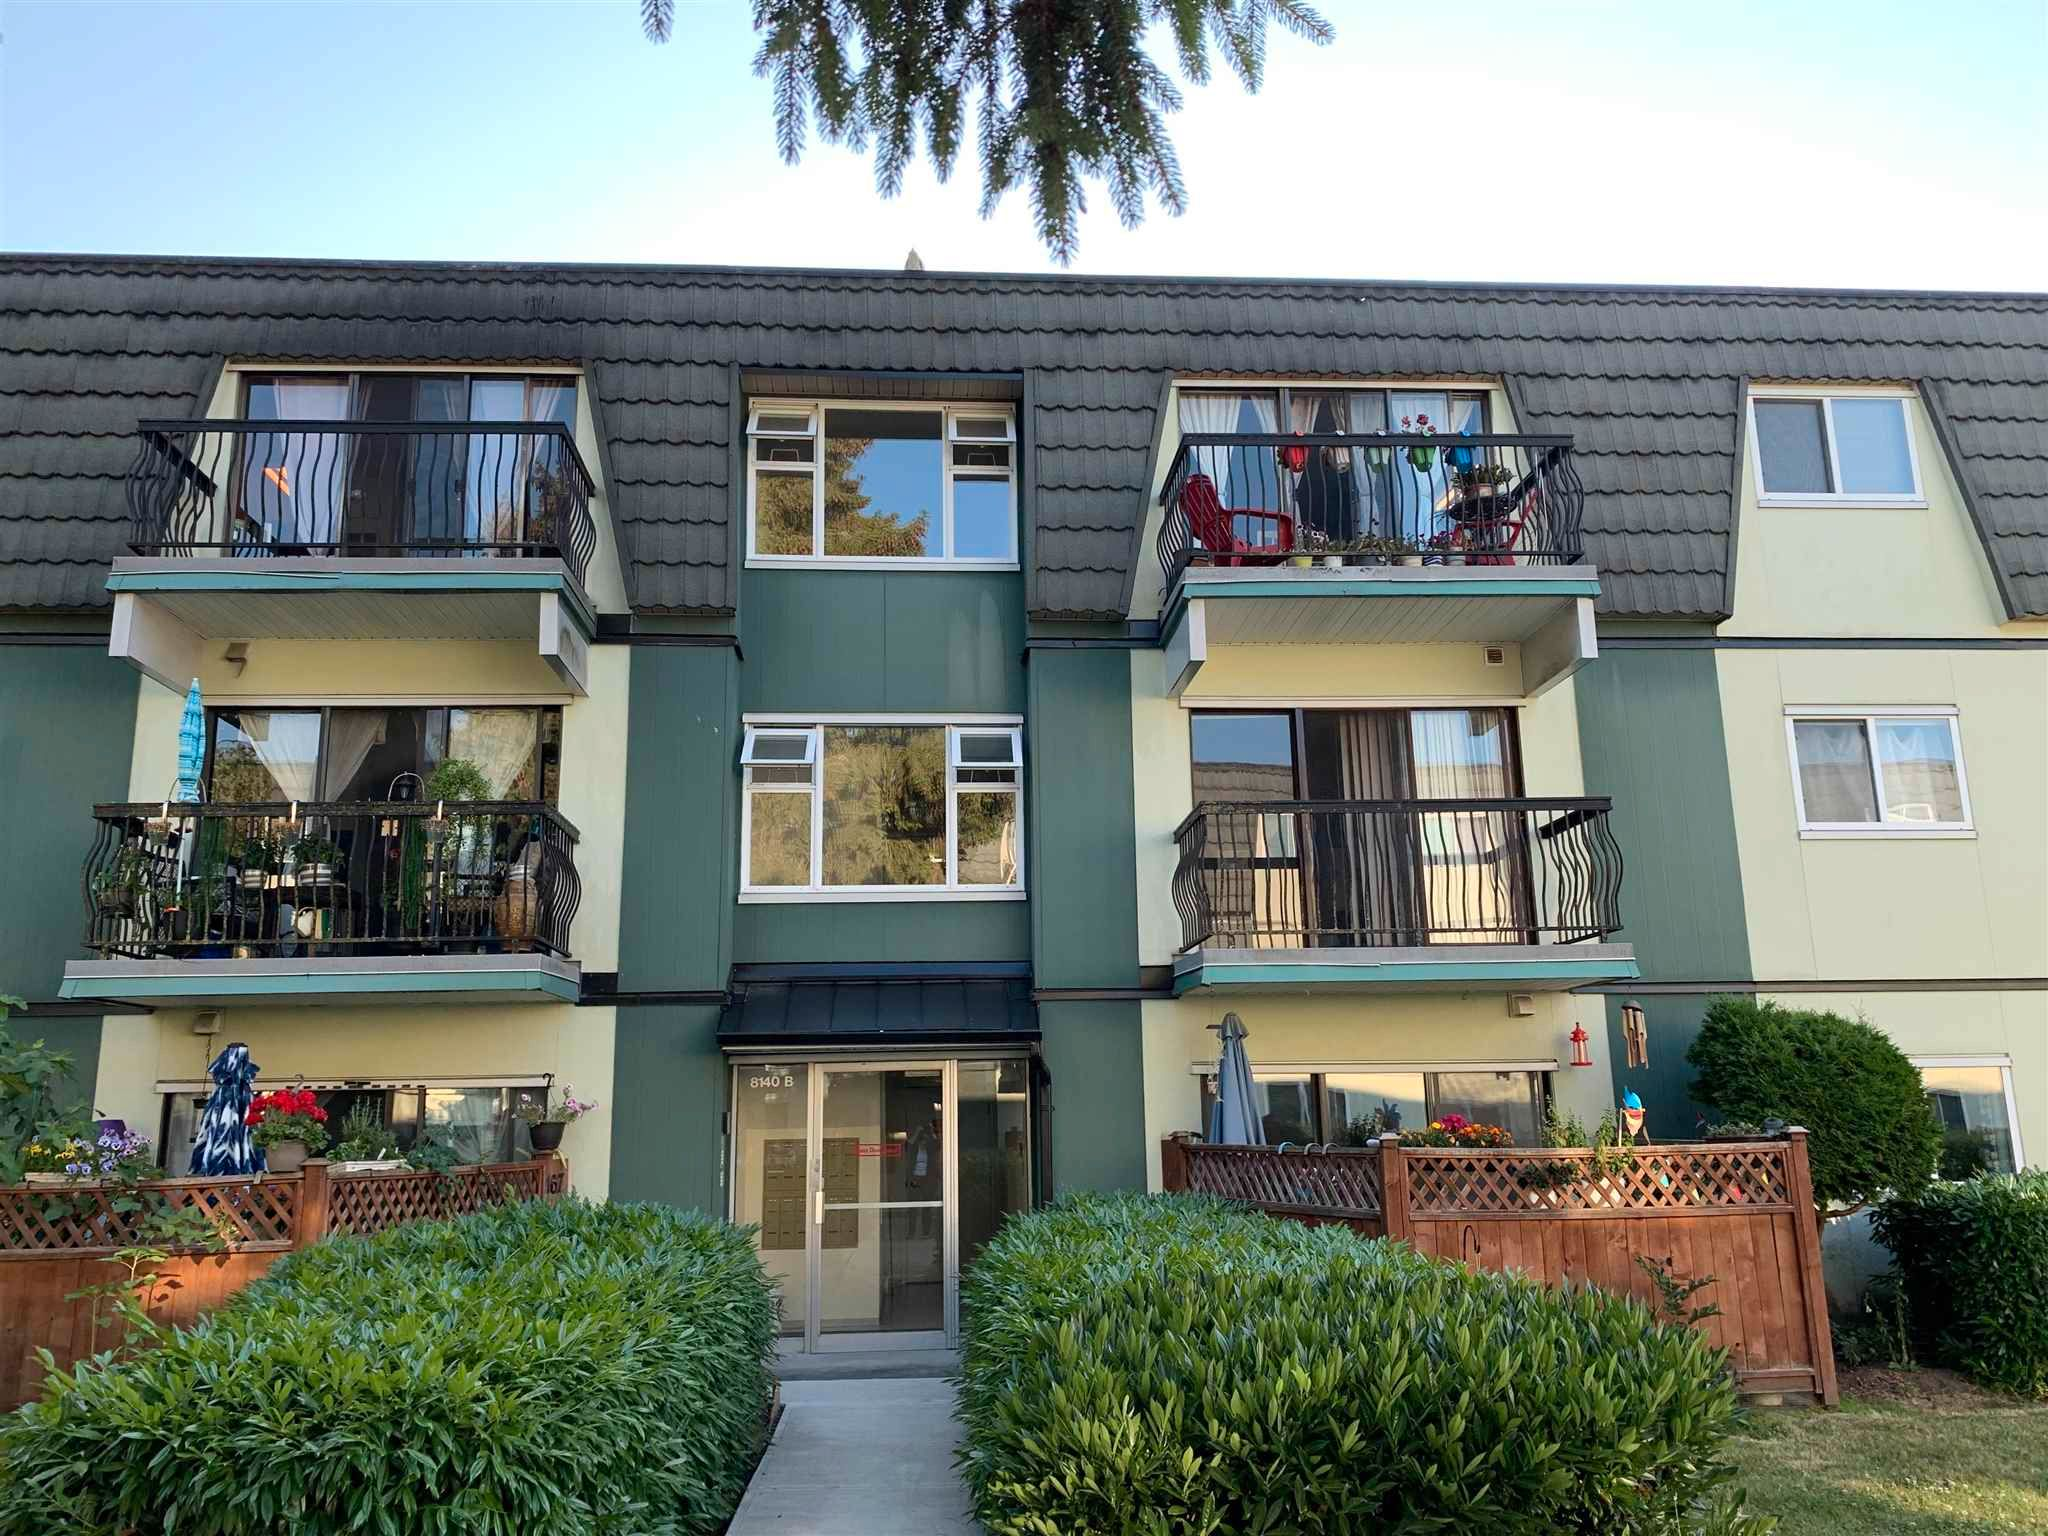 """Main Photo: 270 8140B WILLIAMS Road in Richmond: South Arm Condo for sale in """"MAYFAIR COURT"""" : MLS®# R2600313"""